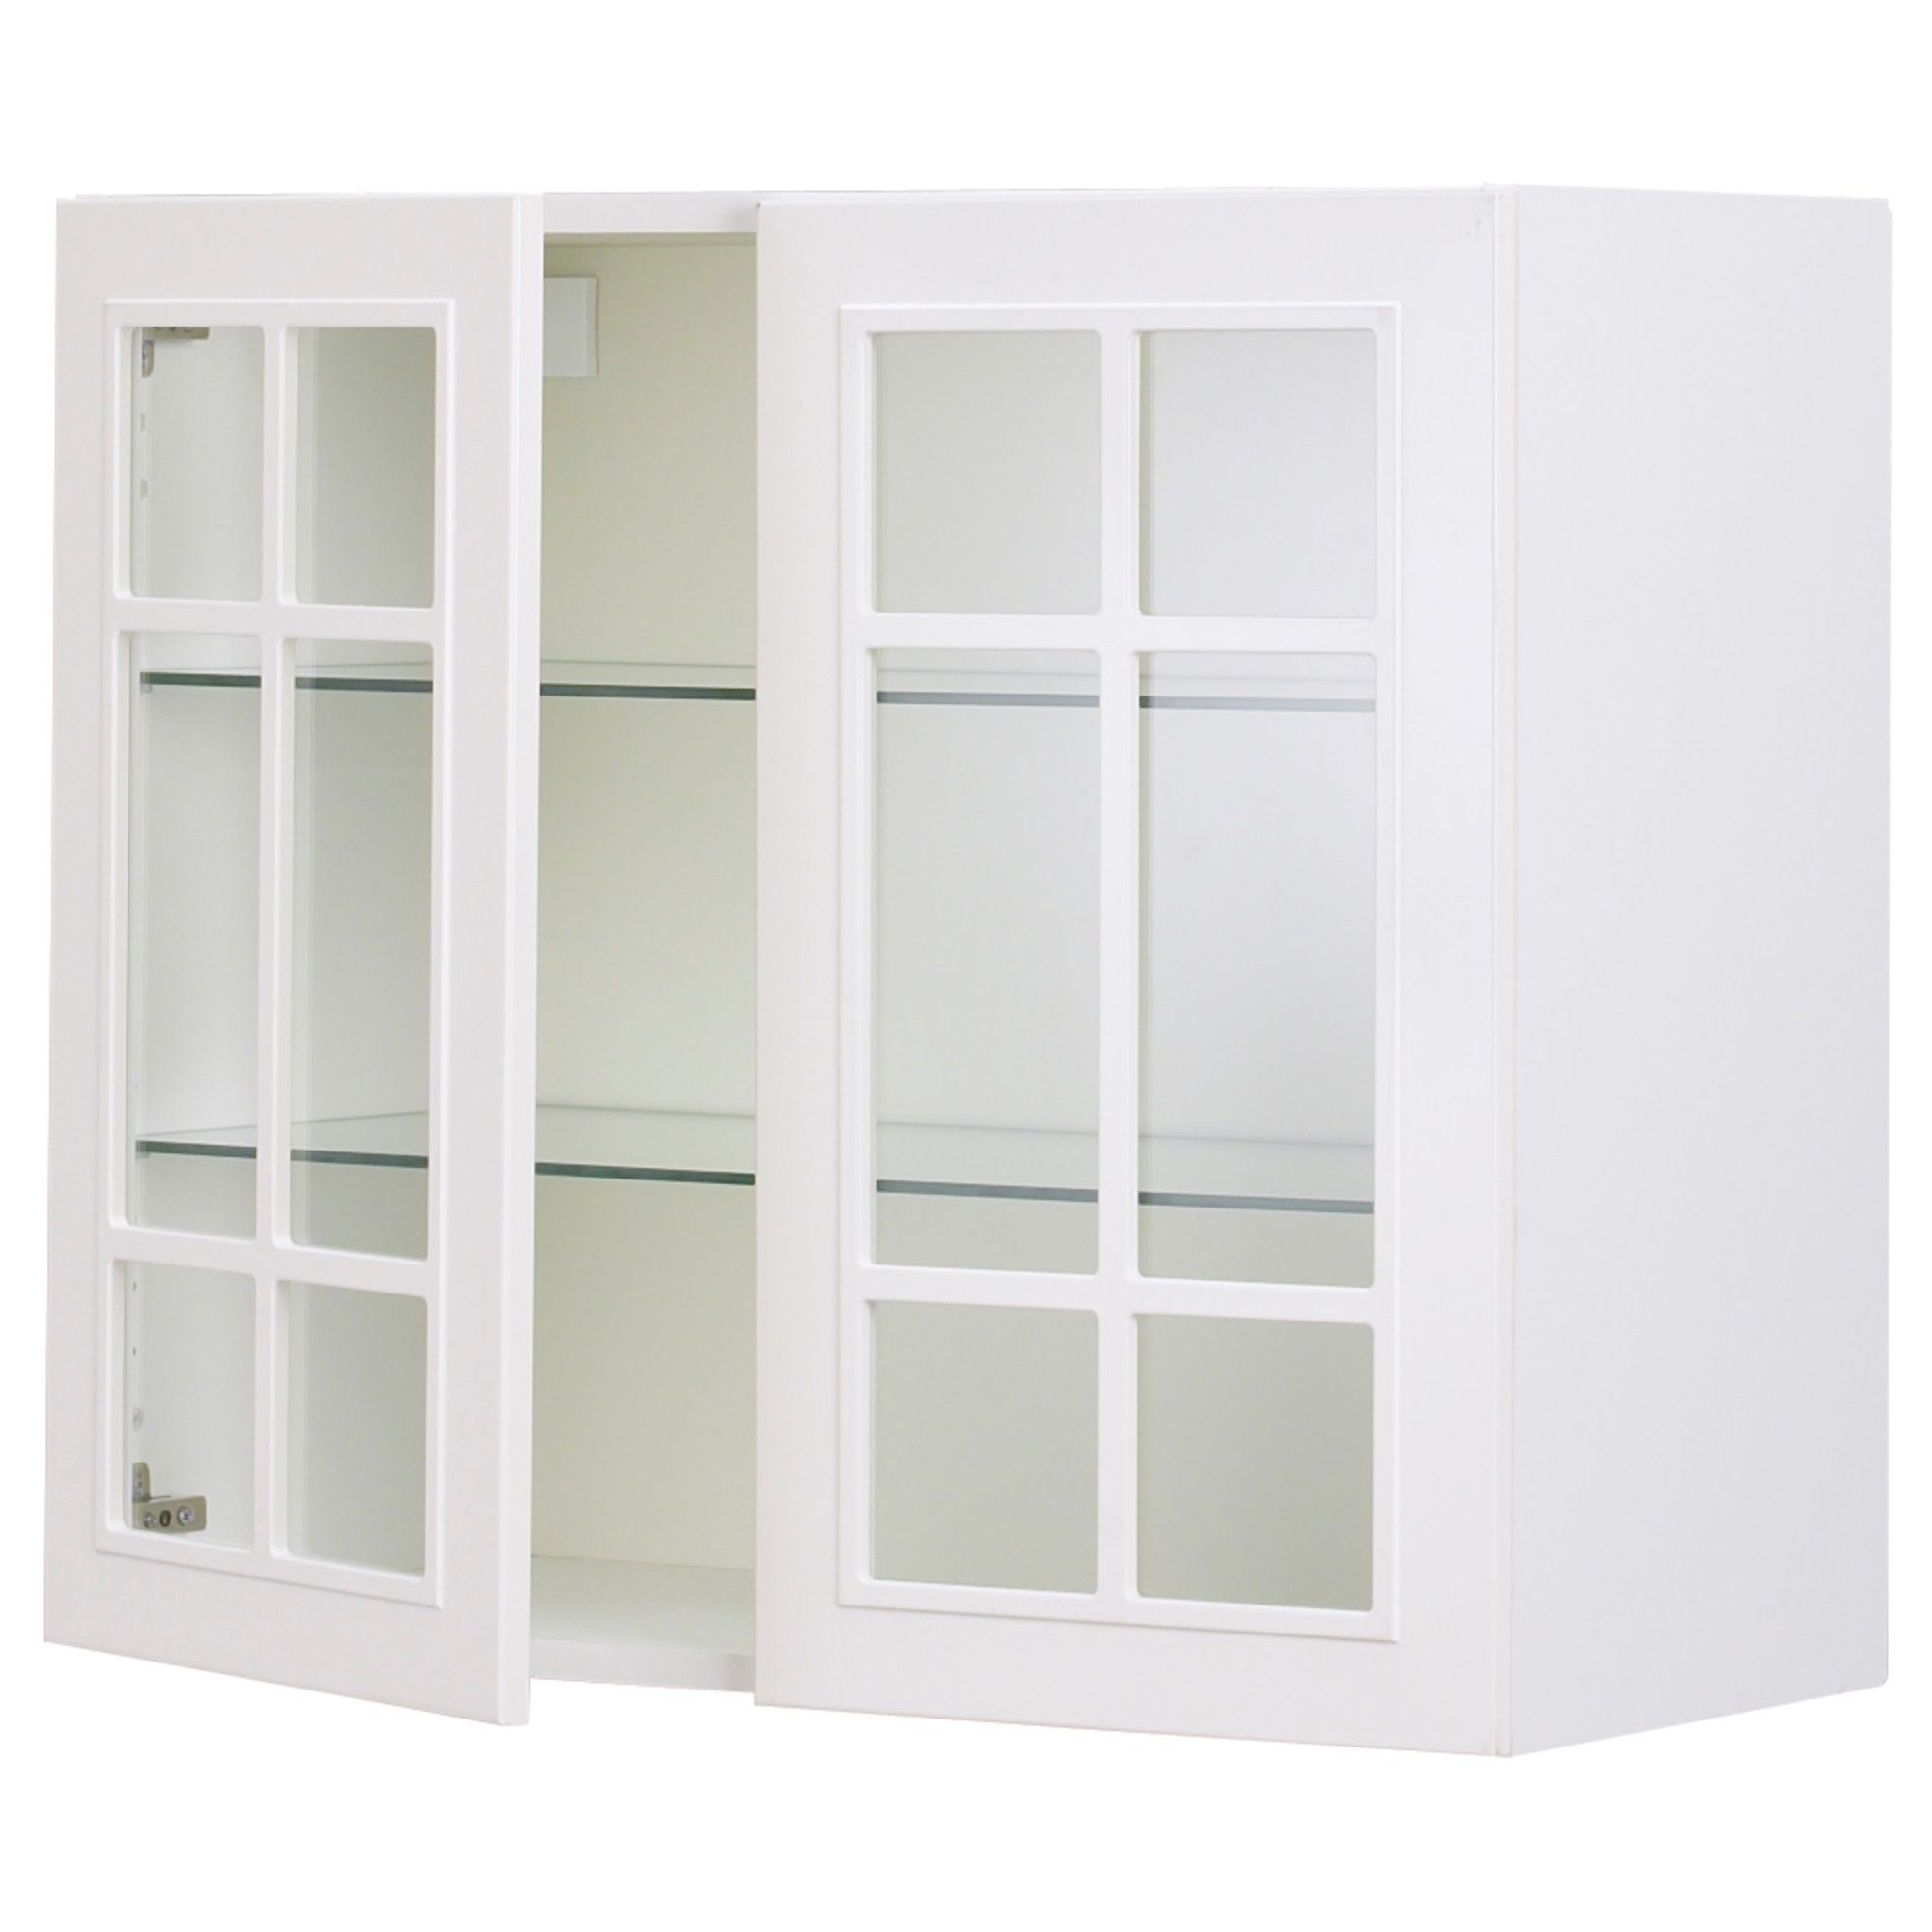 office wall cabinets with doors. ikea - akurum, wall cabinet with 2 glass doors, birch effect, ståt white, office cabinets doors